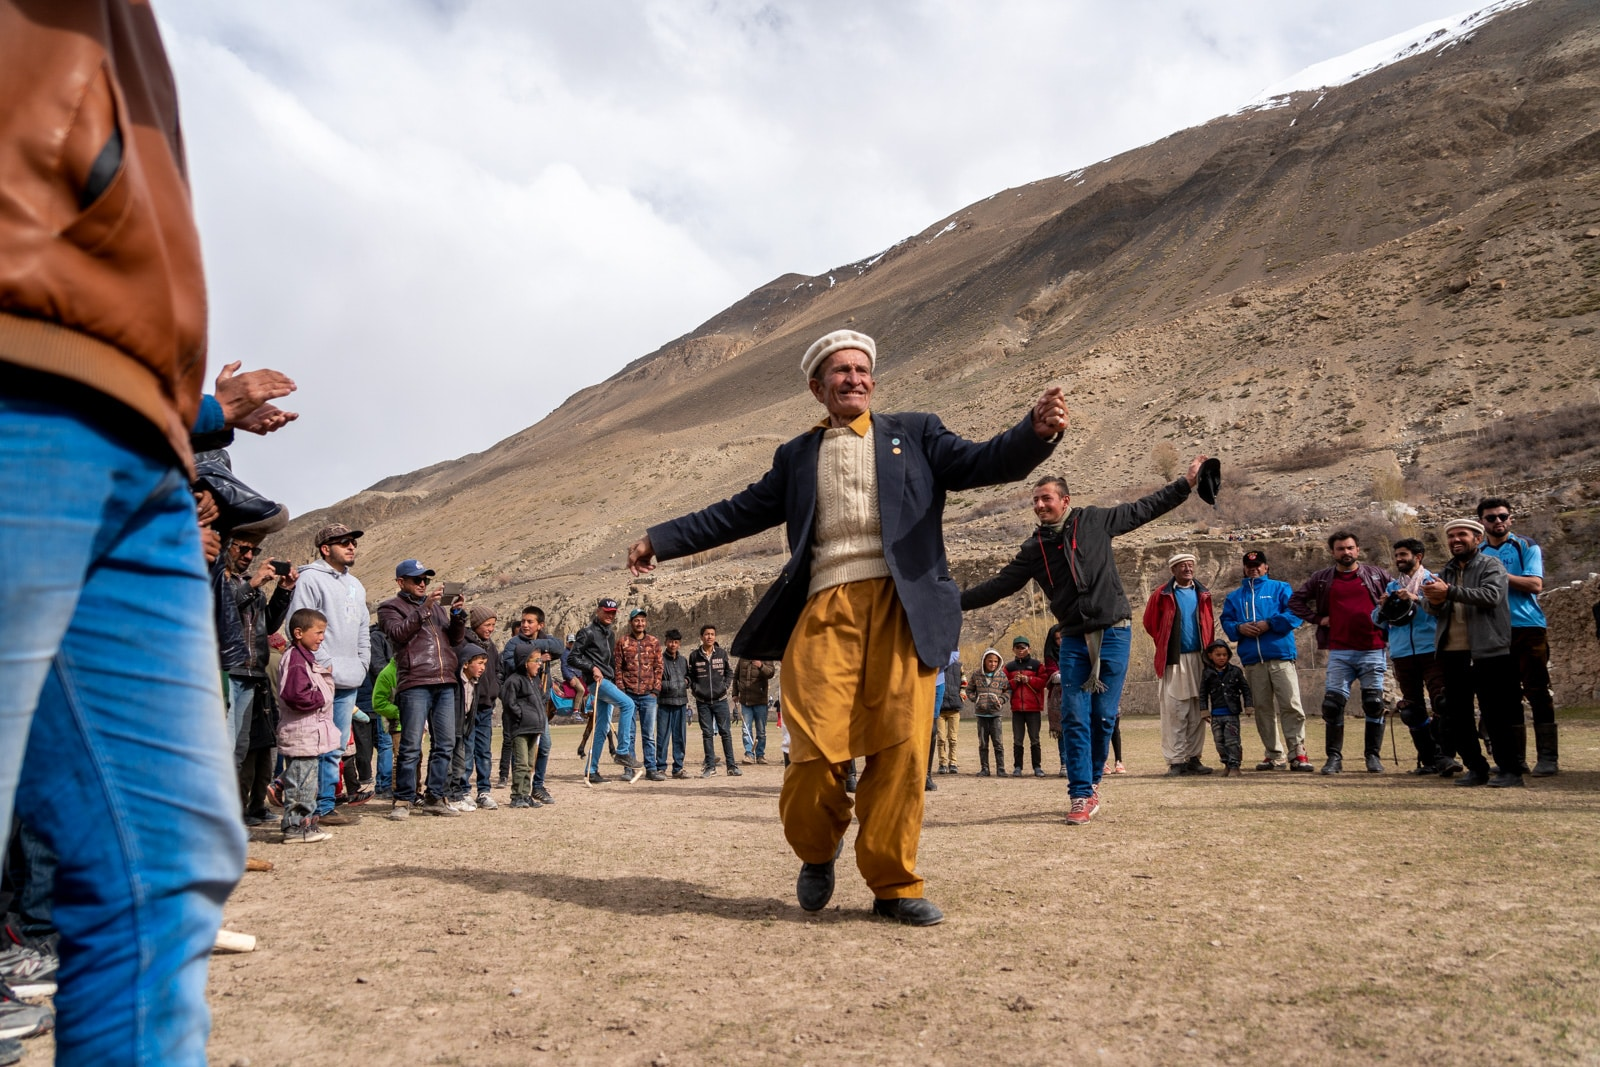 Local man dancing after a polo match in Ispanj village of Chapursan Valley